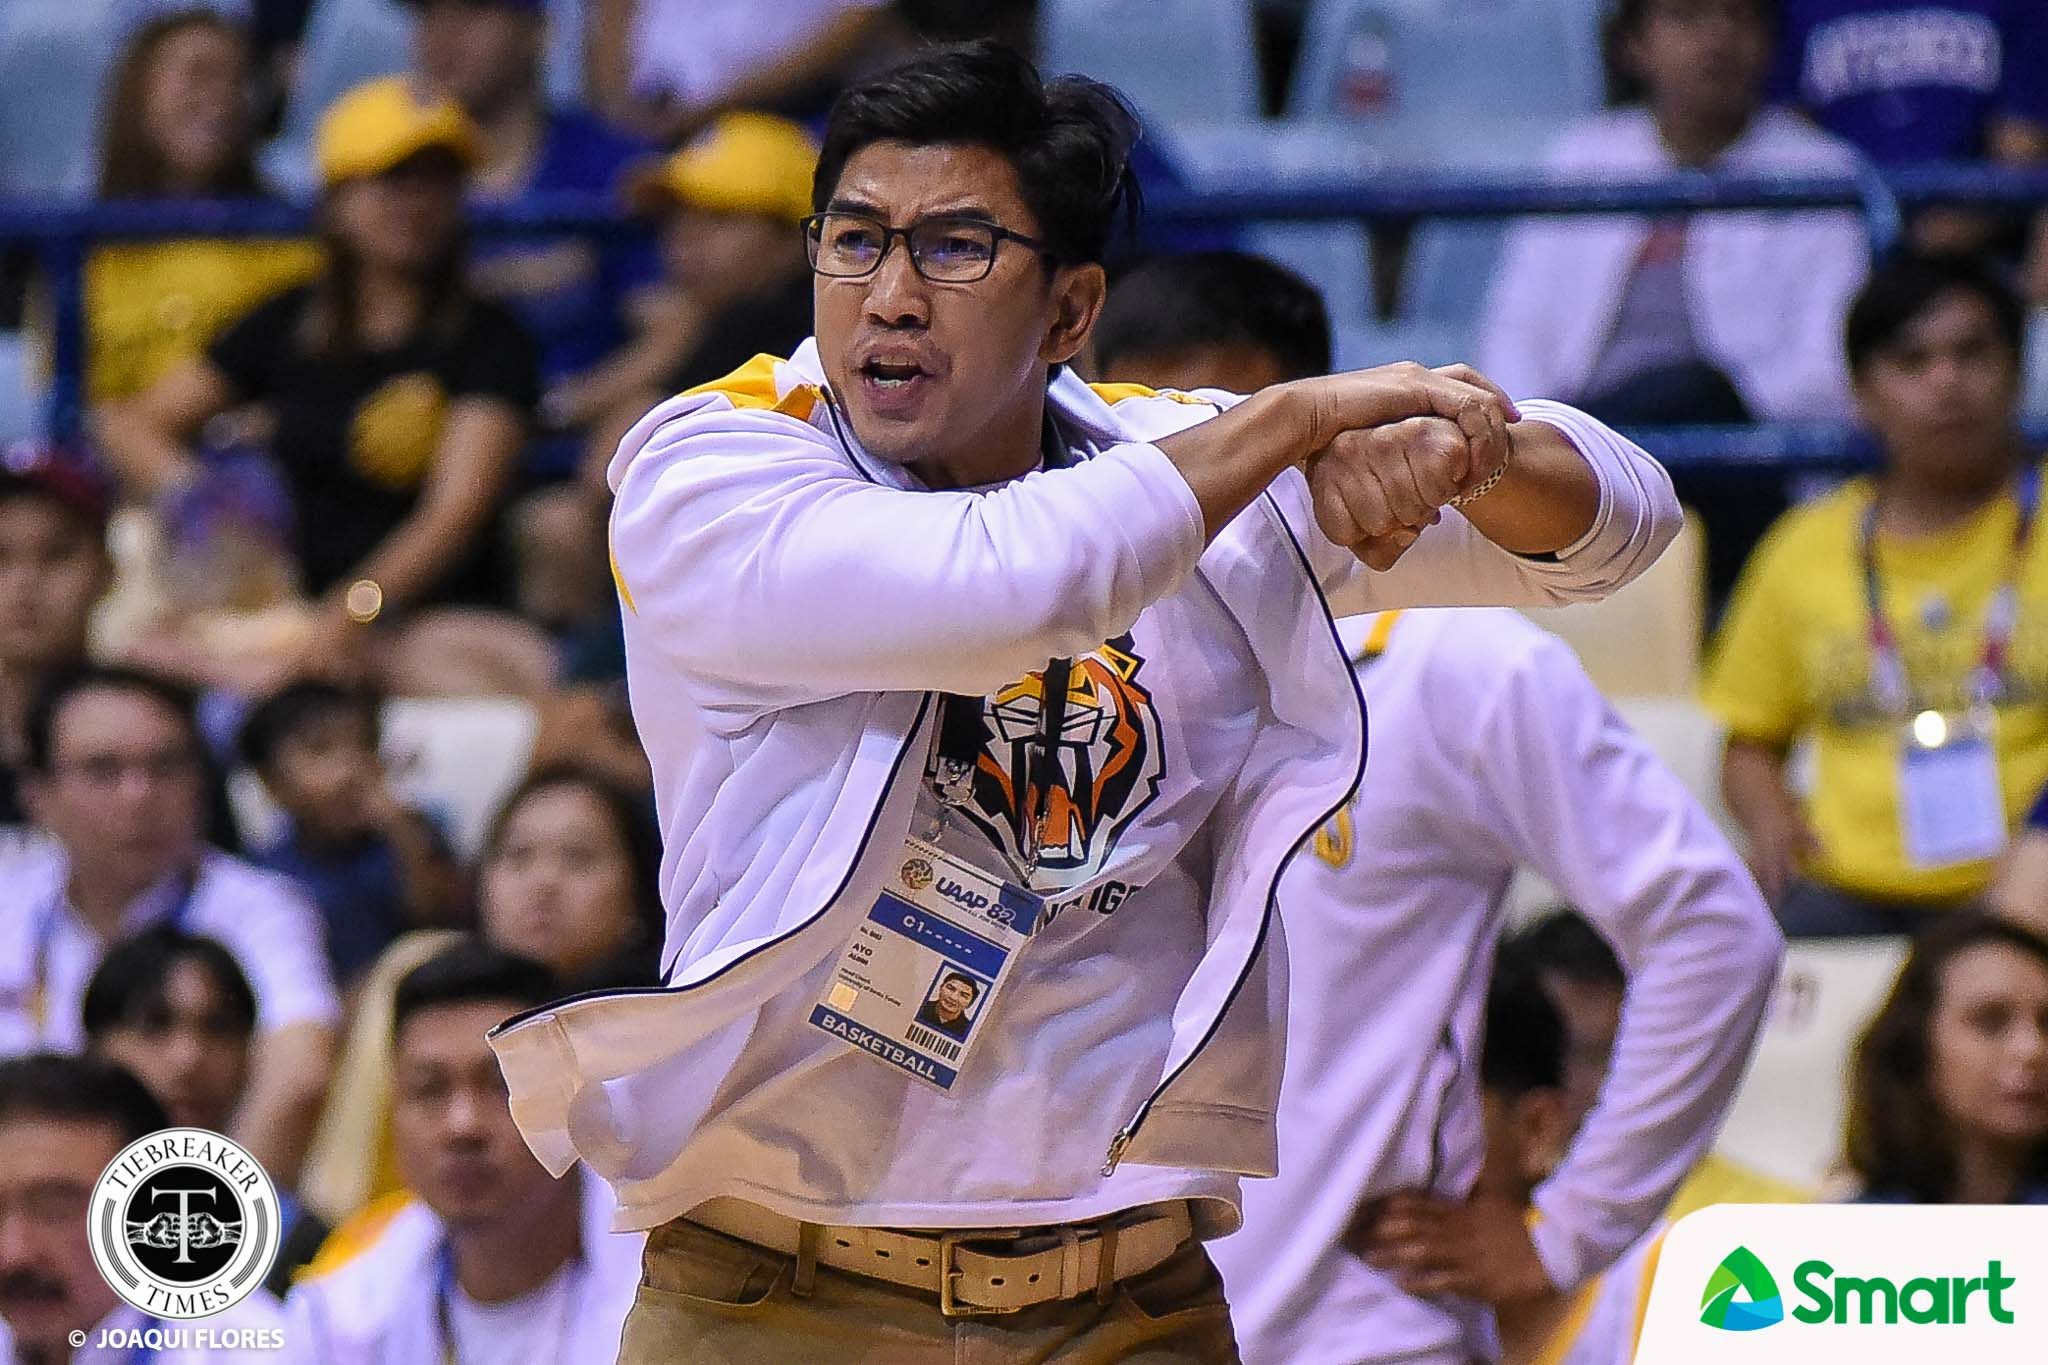 Tiebreaker Times UAAP on Bicol bubble-gate: Reserve judgment until end of UST probe Basketball News UAAP UST  UST Men's Basketball UAAP Season 83 Men's Basketball UAAP Season 83 Rebo Saguisag Coronavirus Pandemic Aldin Ayo